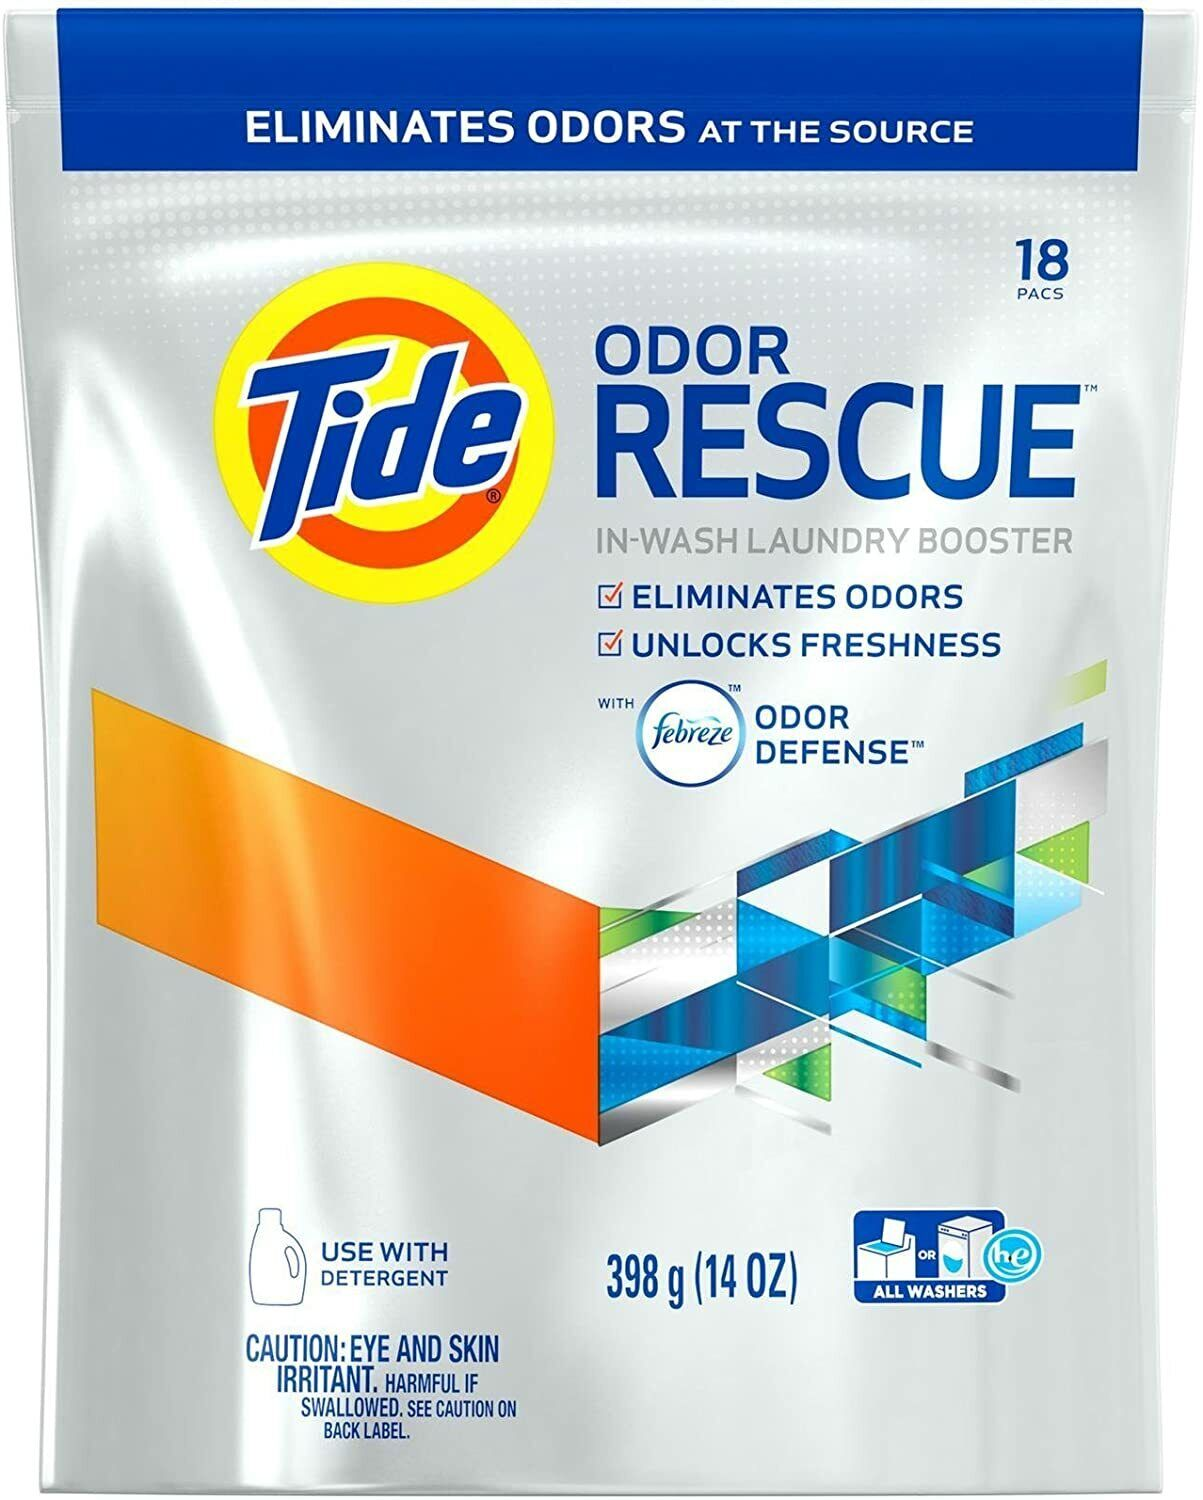 Tide Laundry Booster Odor Rescue Pods Febreze Odor Defense 18 Pack Detergents, Softeners & Stain Removers